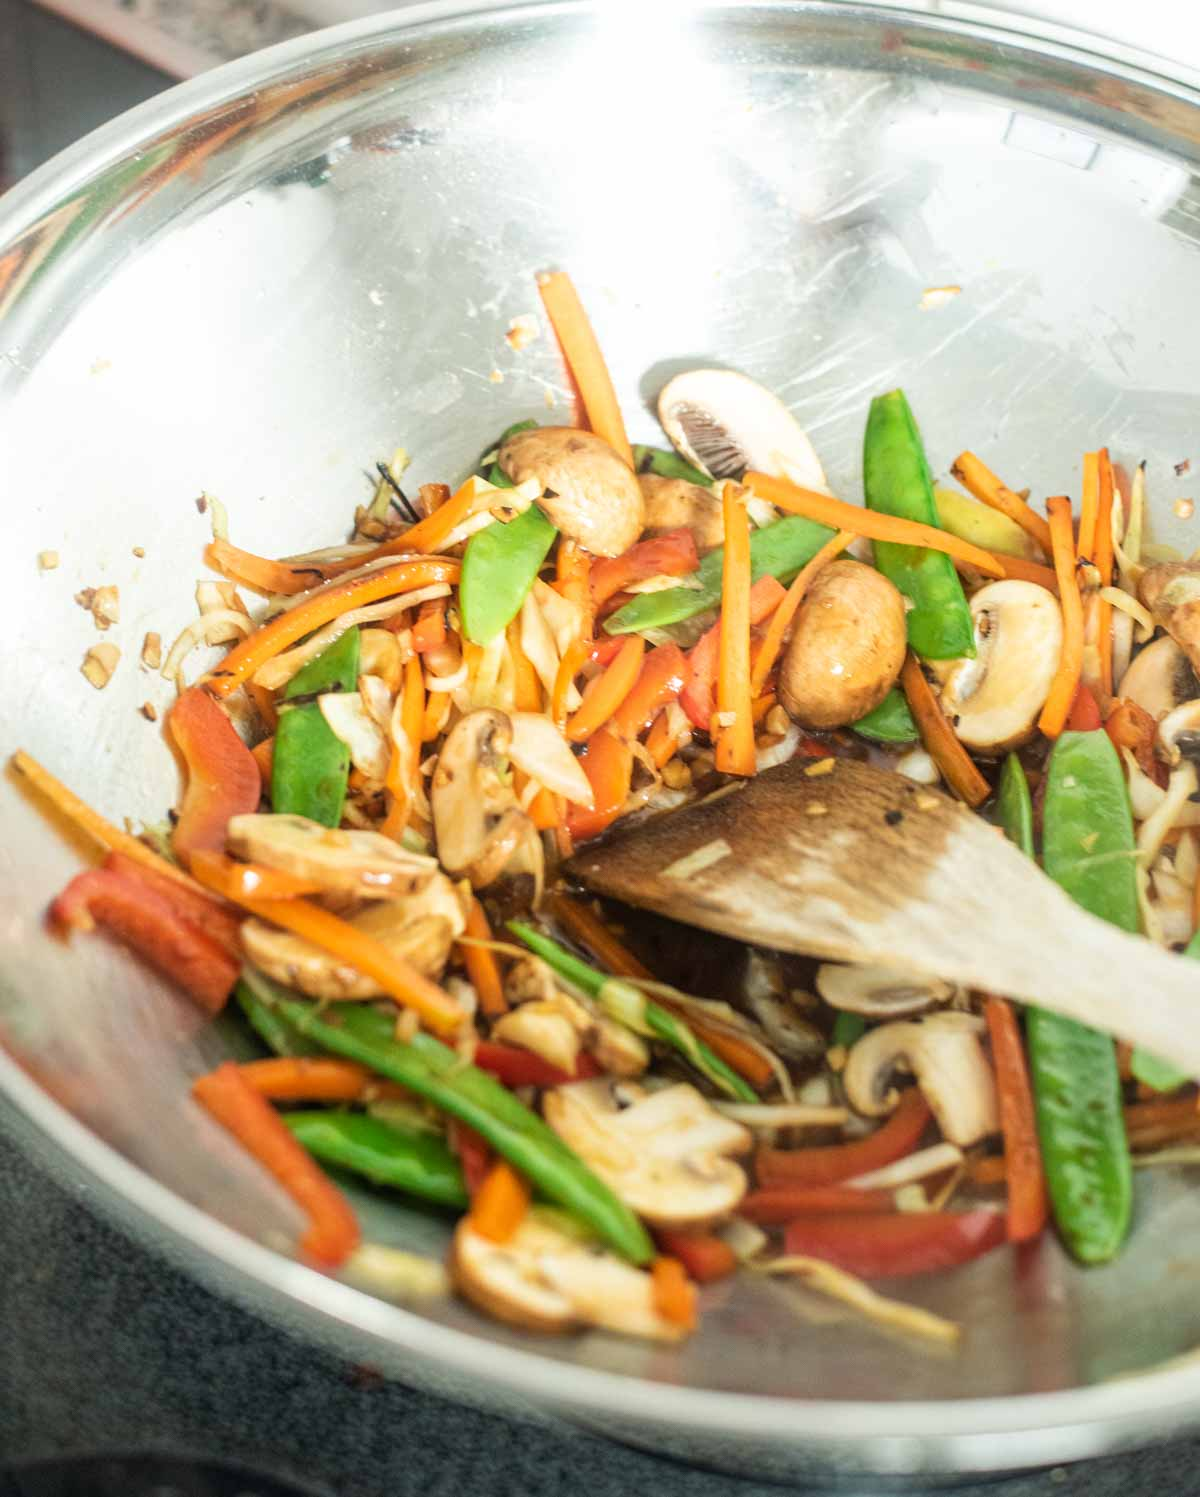 Vegetables being stir fried in a wok with a wooden spatula